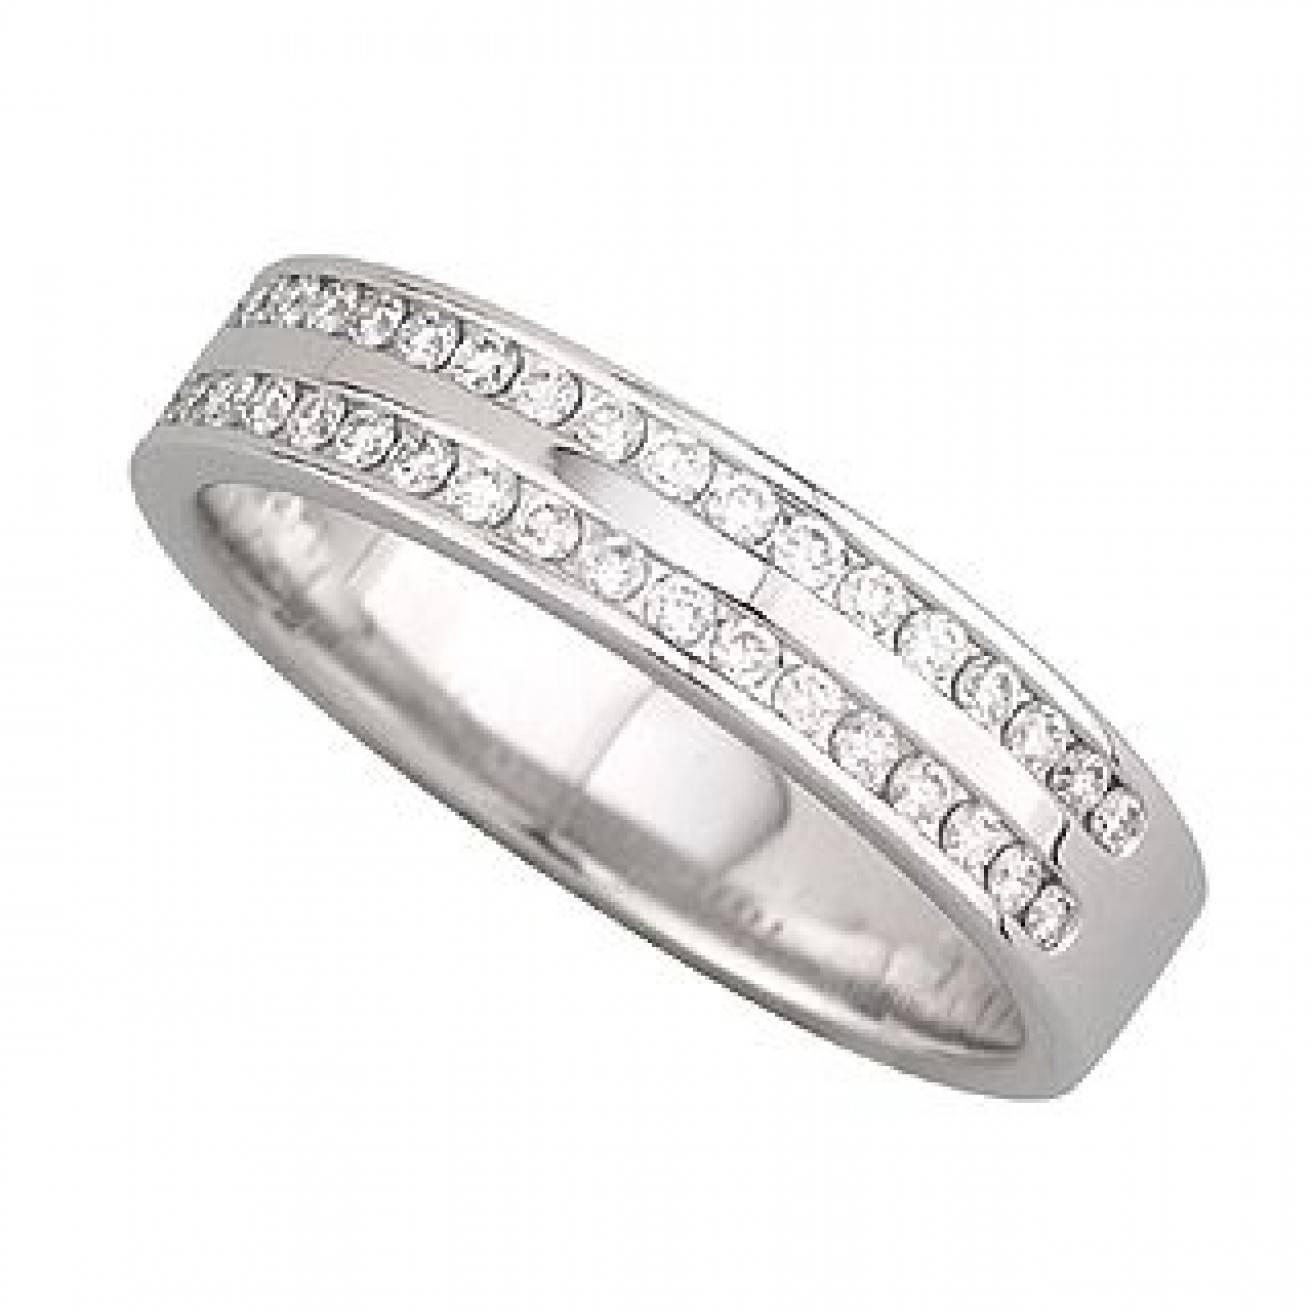 Buy A Diamond Wedding Ring – Fraser Hart Throughout Most Up To Date Platinum Diamond Wedding Bands (View 2 of 15)